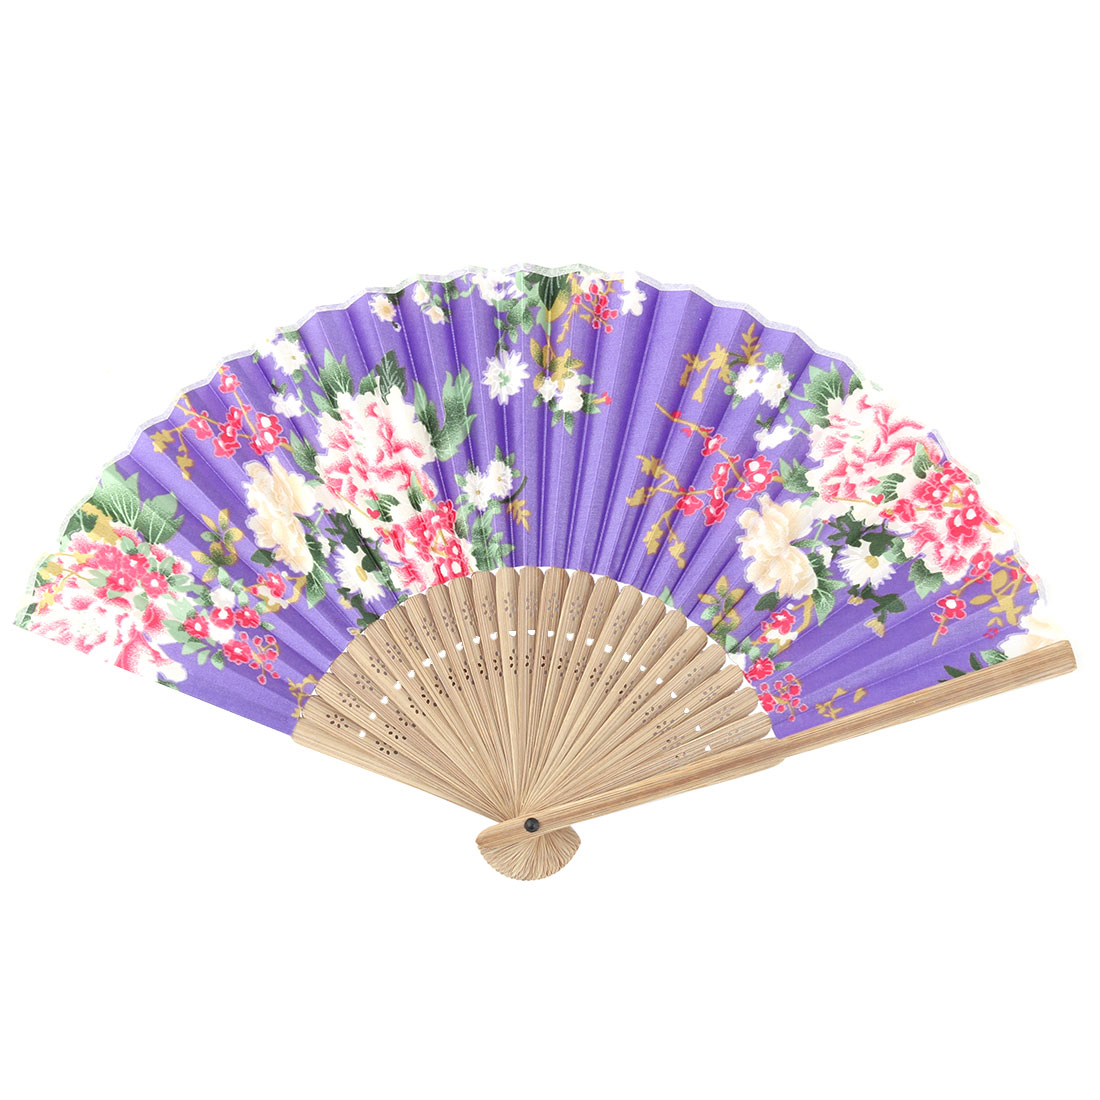 Wedding Bamboo Flower Printed Retro Style Folding Dancing Hand Fan 21cm Length